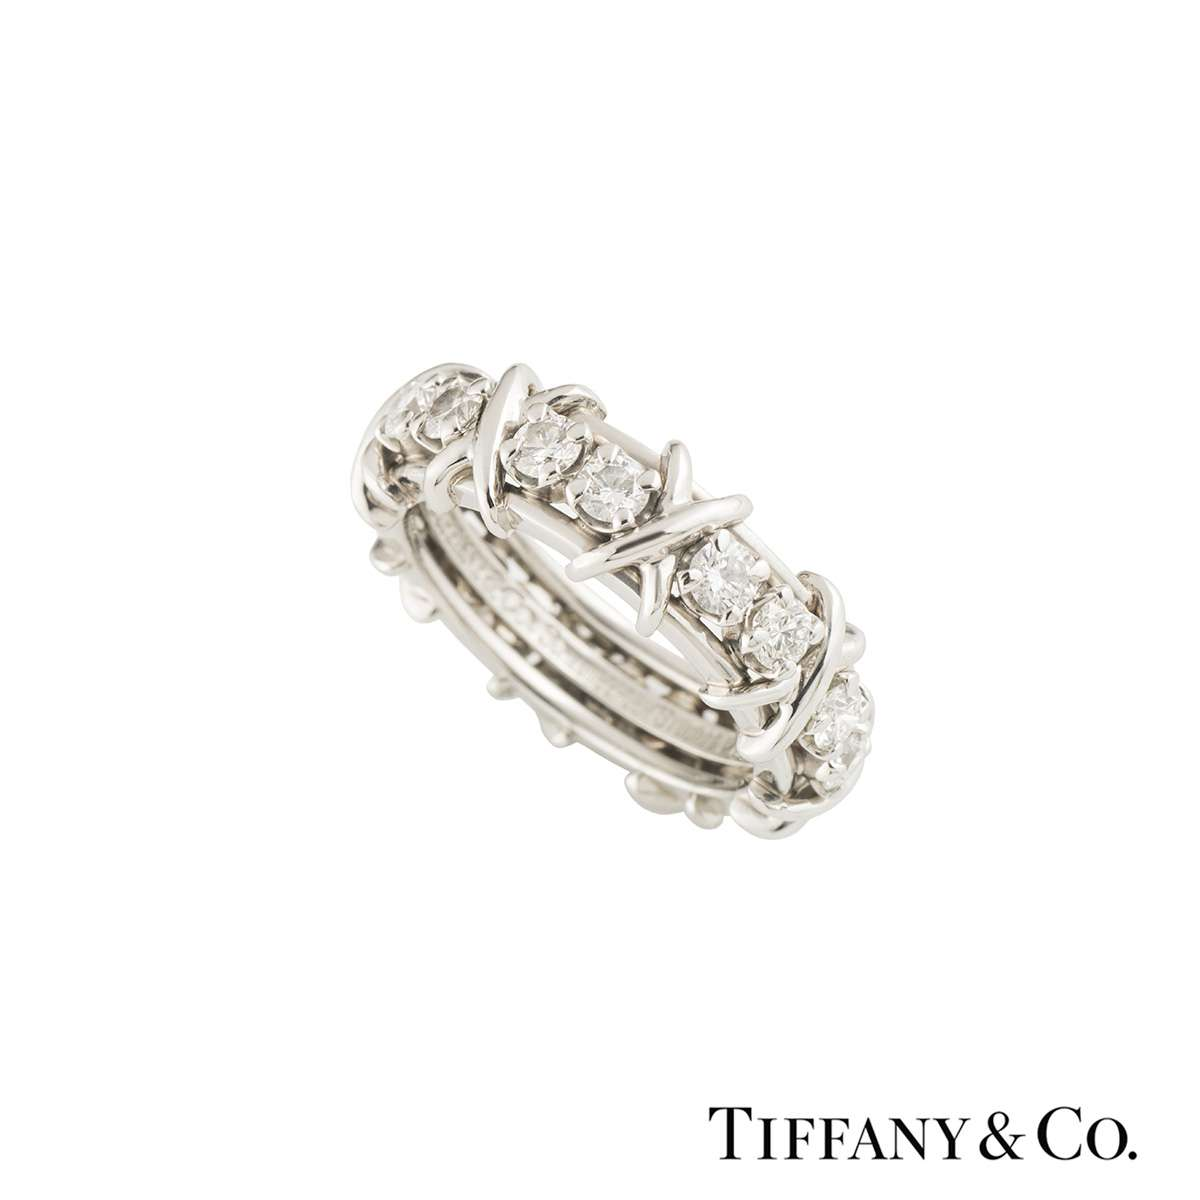 Tiffany & Co. Diamond Schlumberger Ring 1.14ct